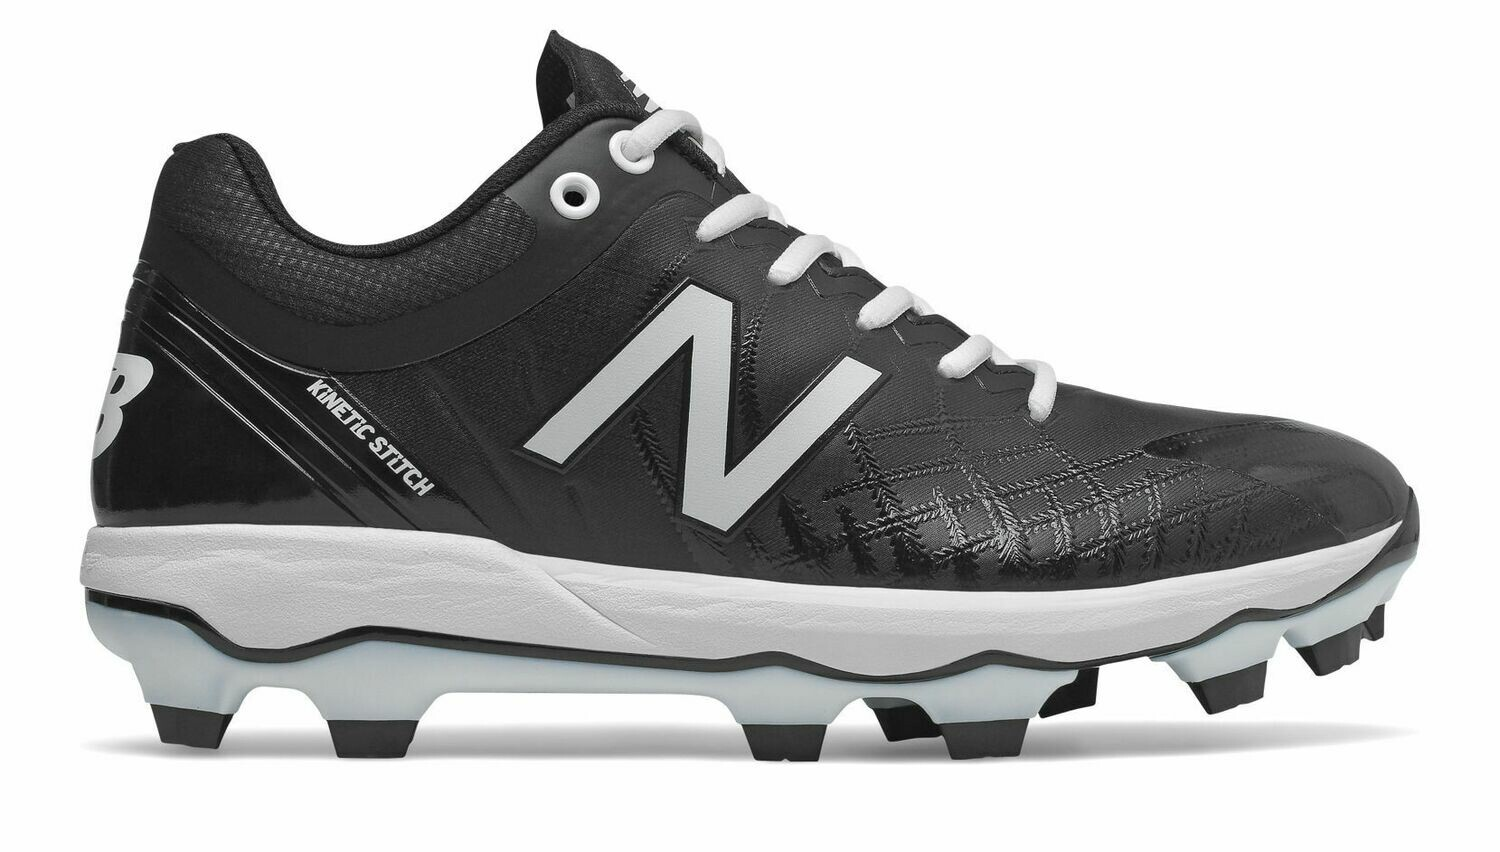 New Balance Molded Cleats